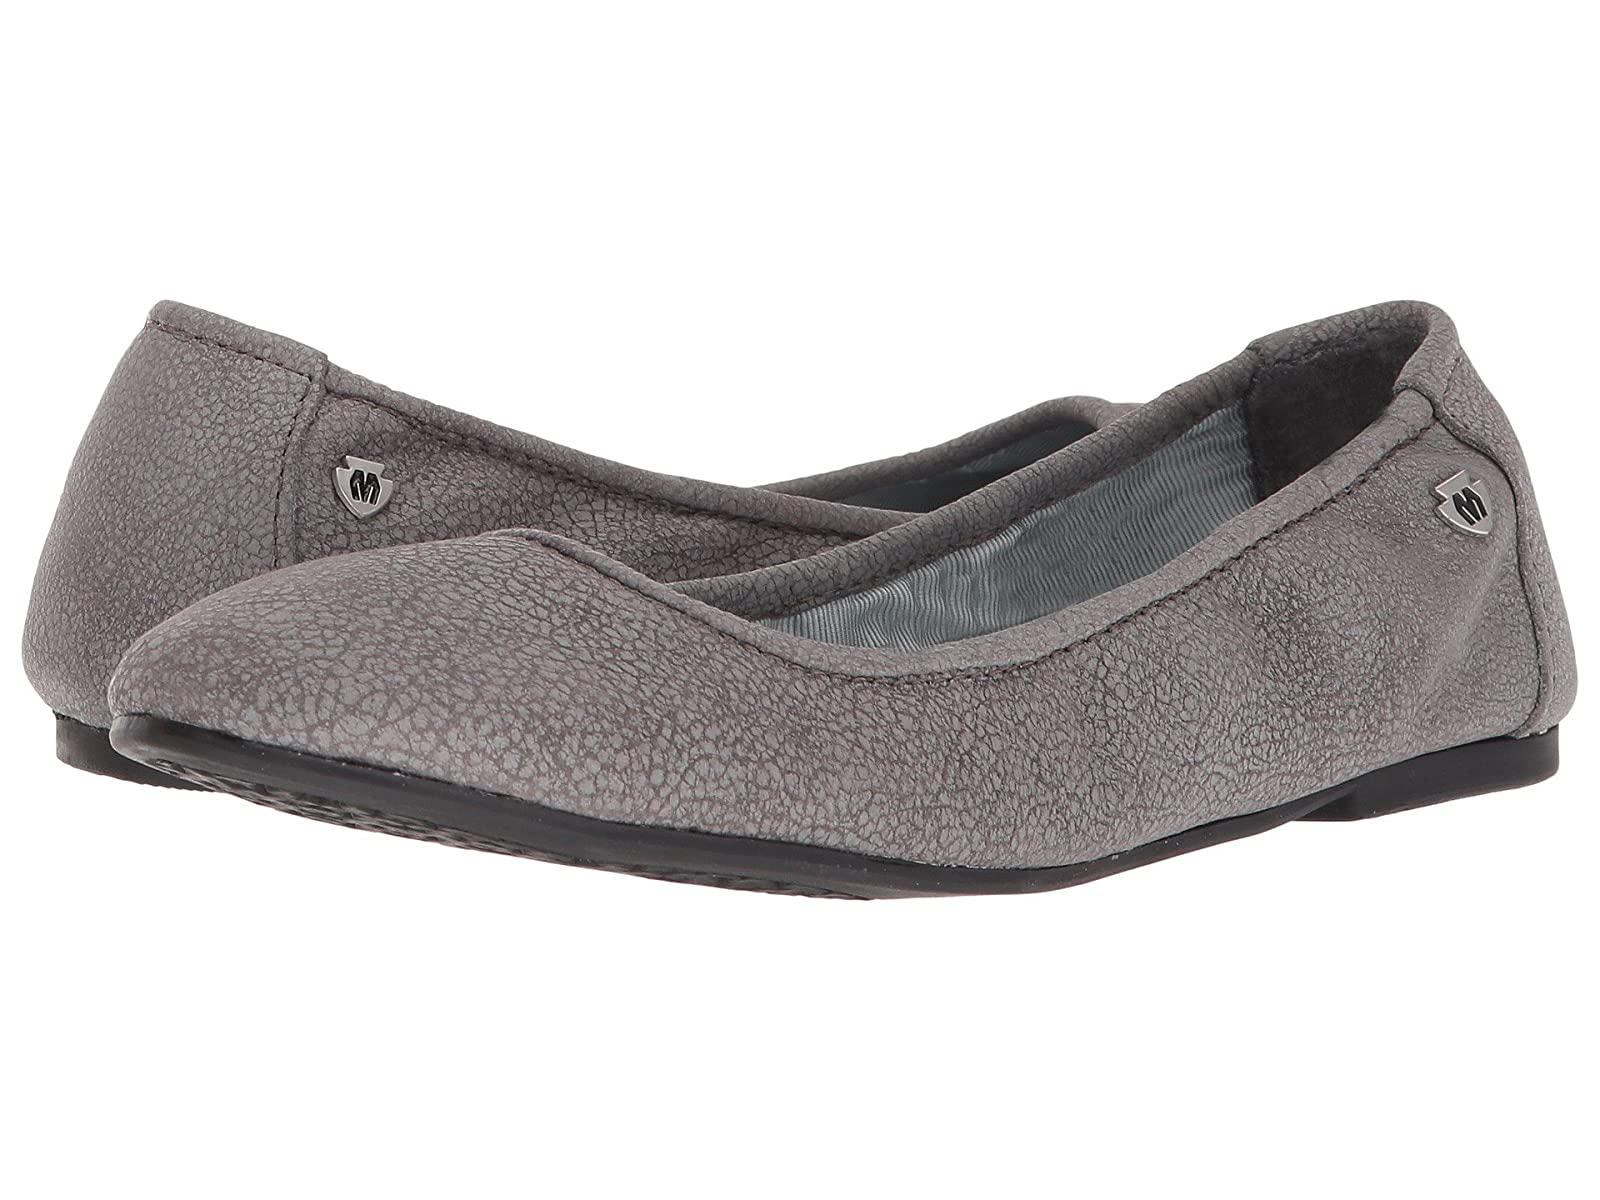 Minnetonka AnnaAtmospheric grades have affordable shoes